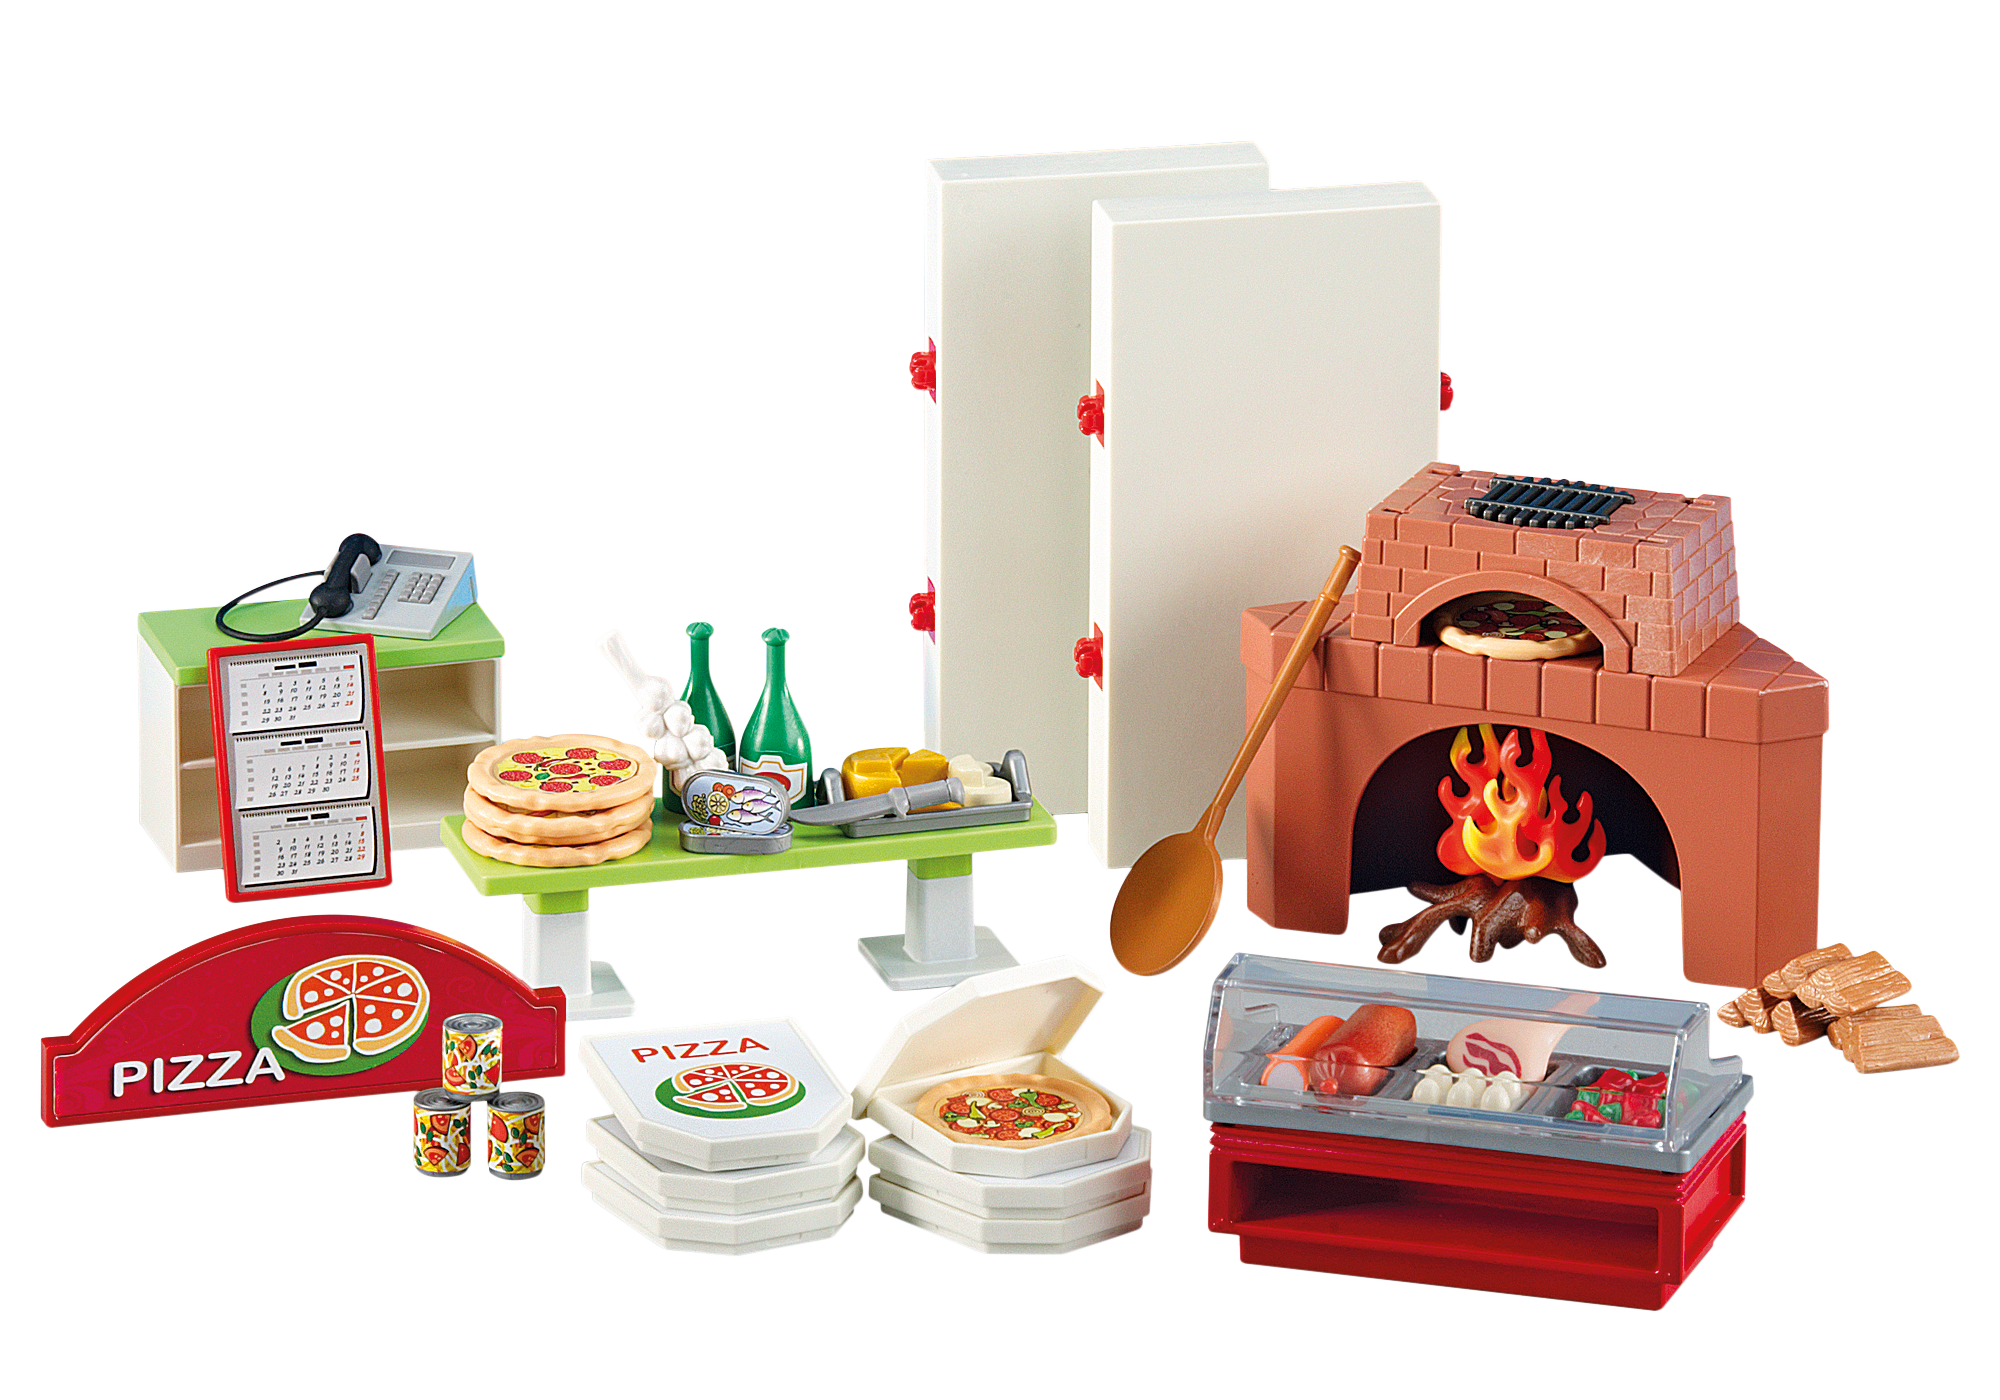 http://media.playmobil.com/i/playmobil/6291_product_detail/Inrichting pizzeria